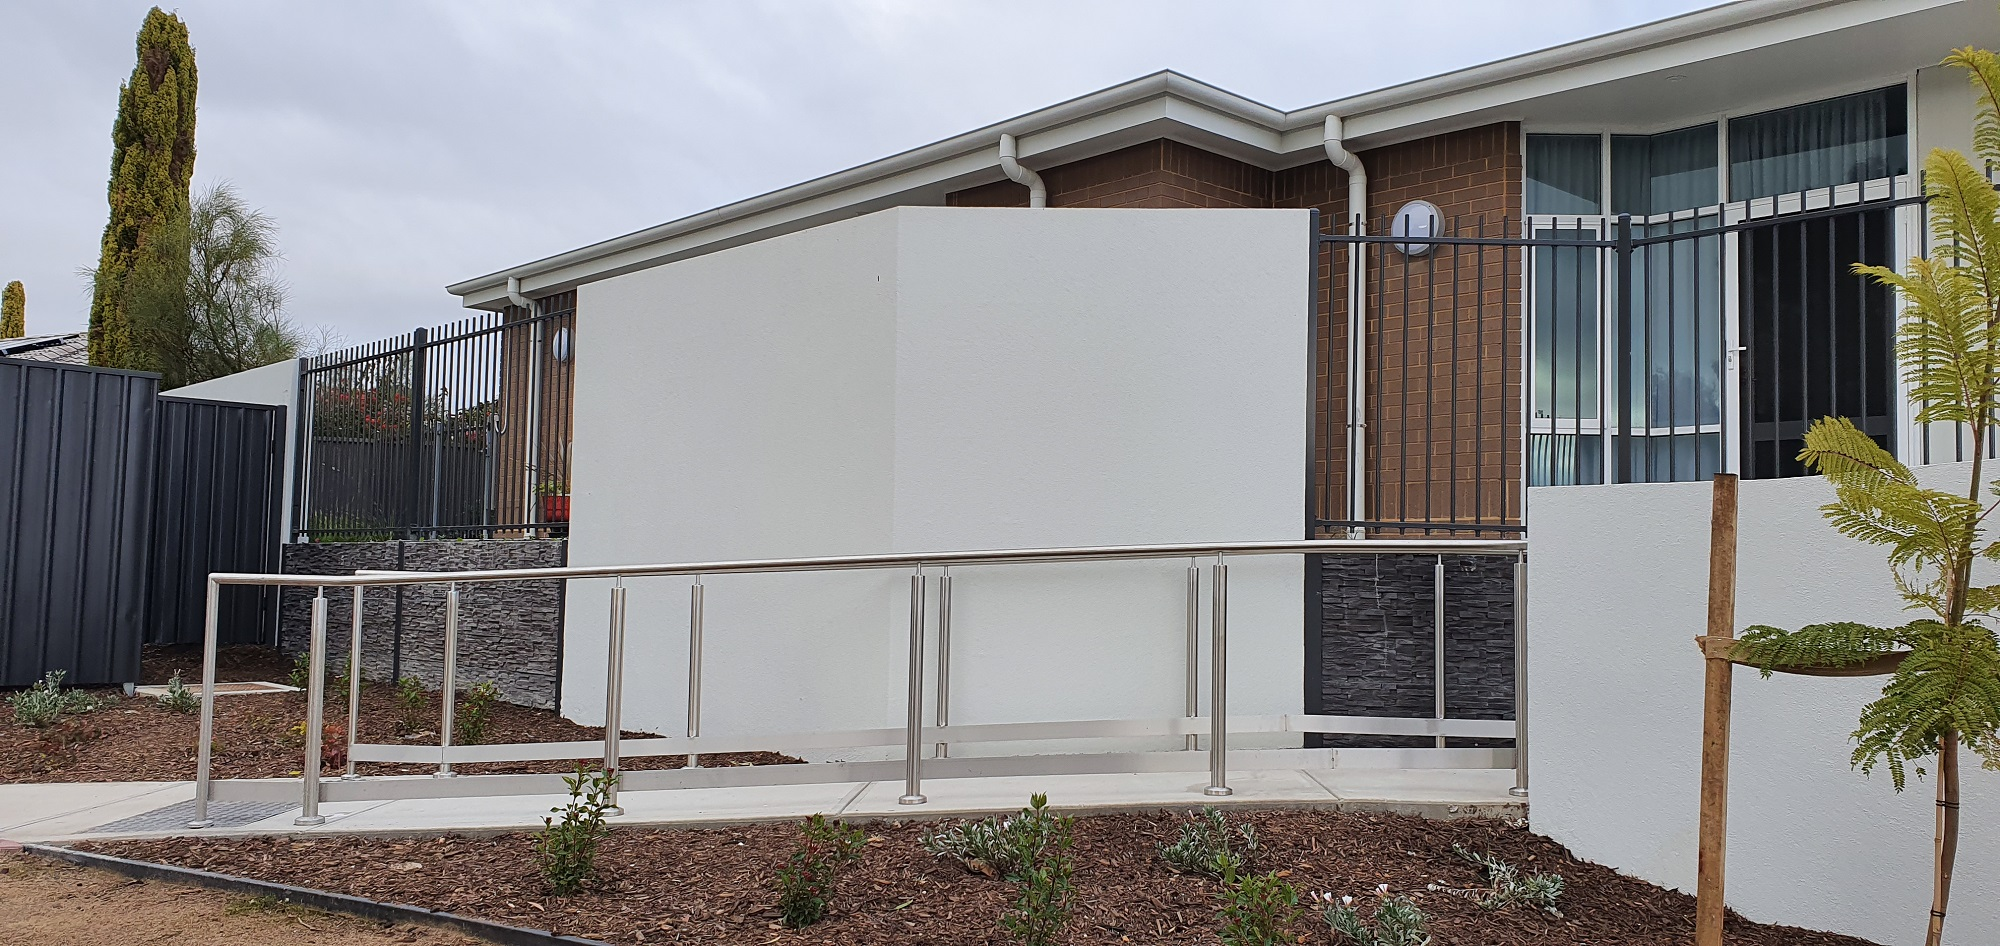 Commercial Fencing Adelaide Fence Centre Retirement Village Boundary Fencing 1